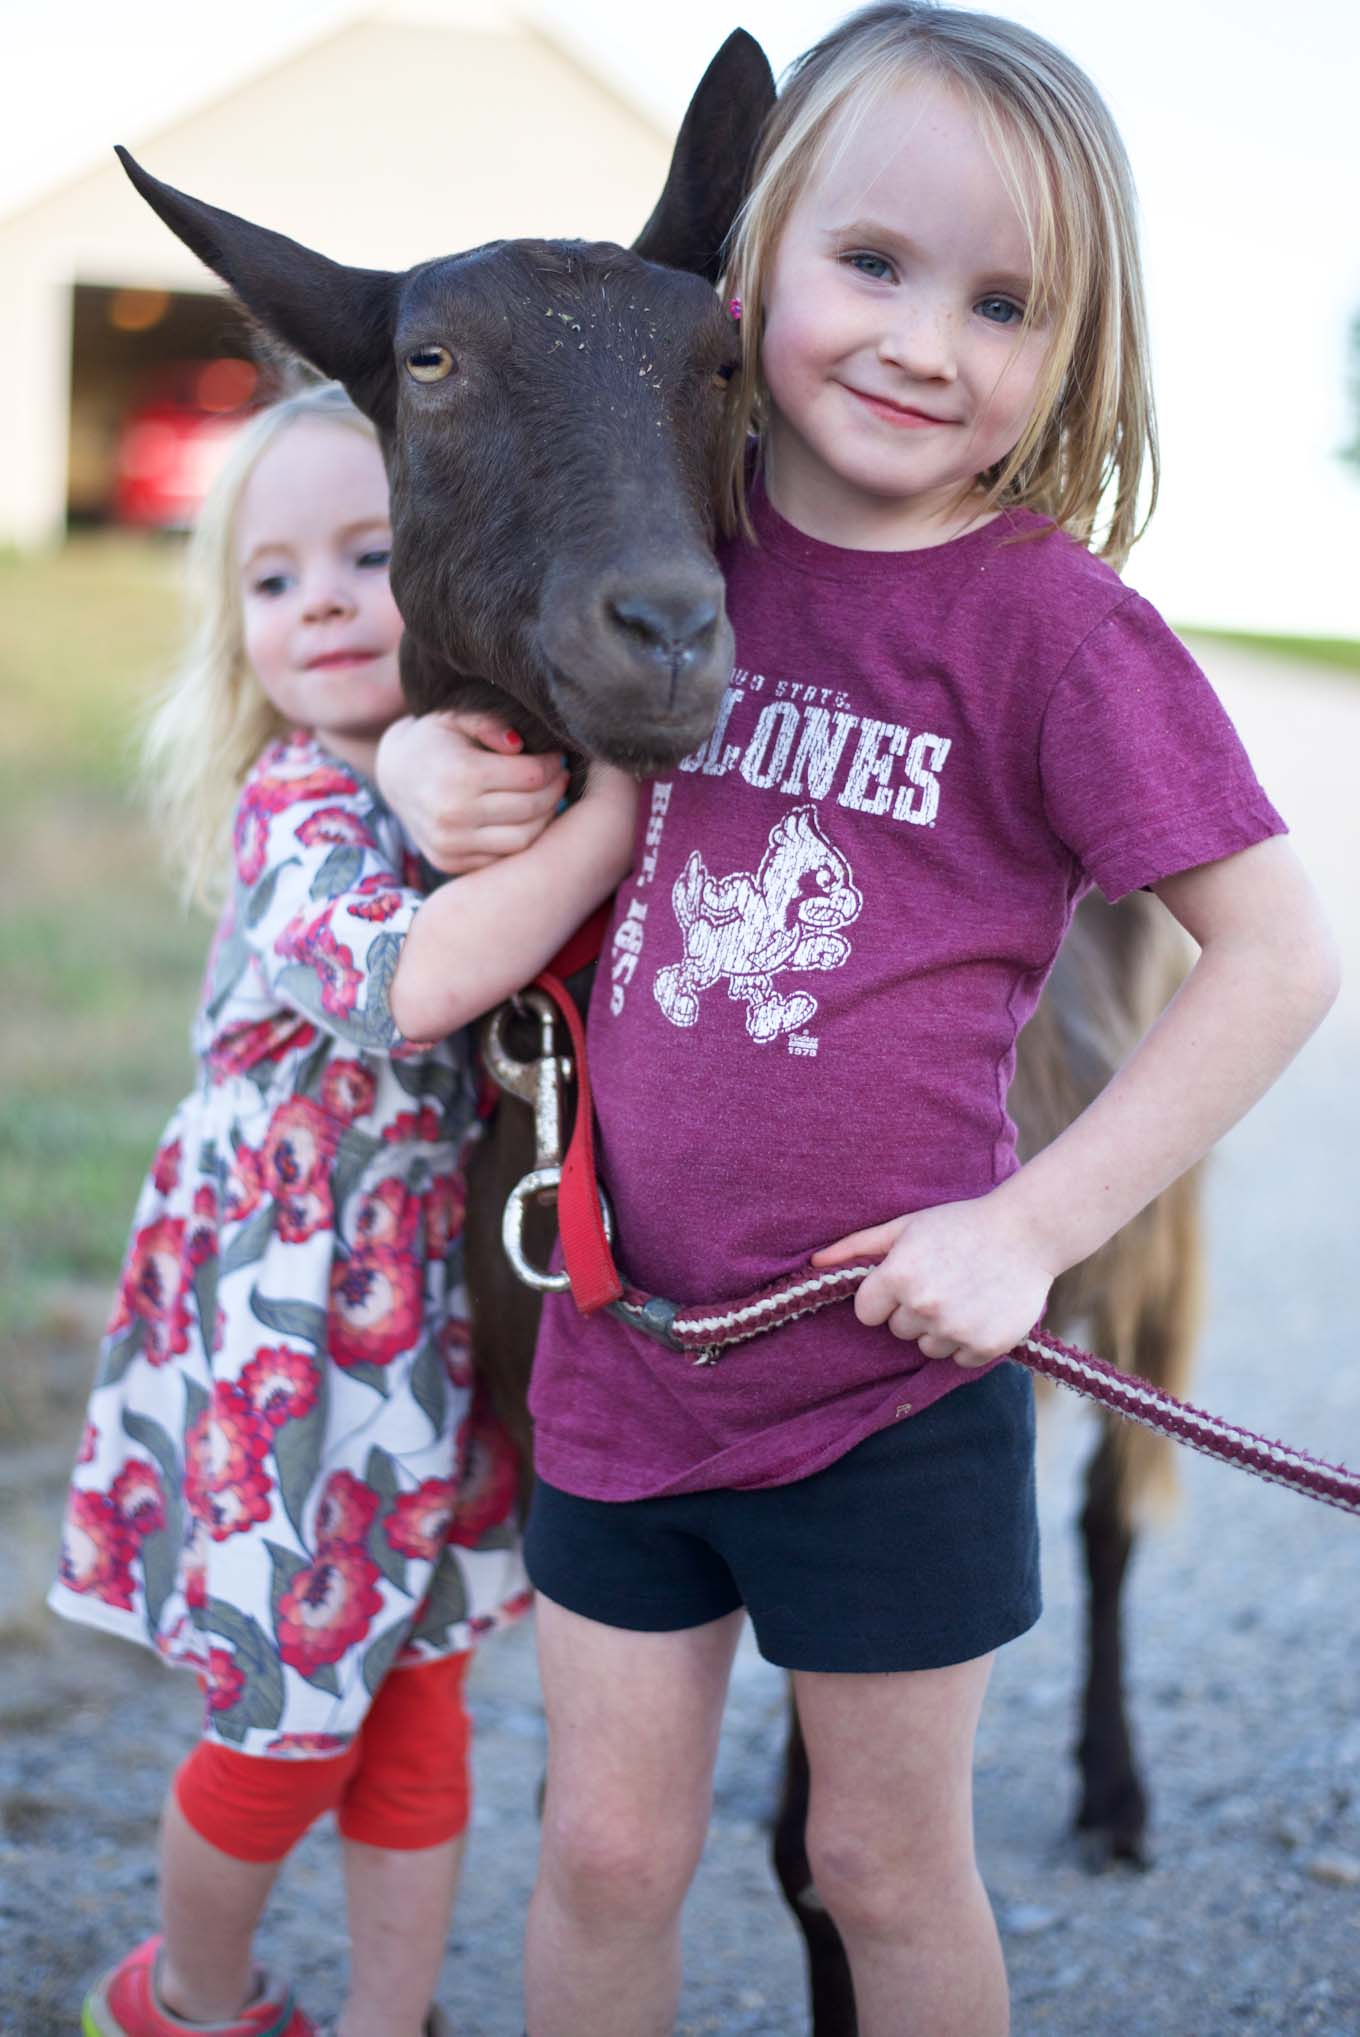 A modern family living on a hobby farm in Iowa looking to gain health and joy.